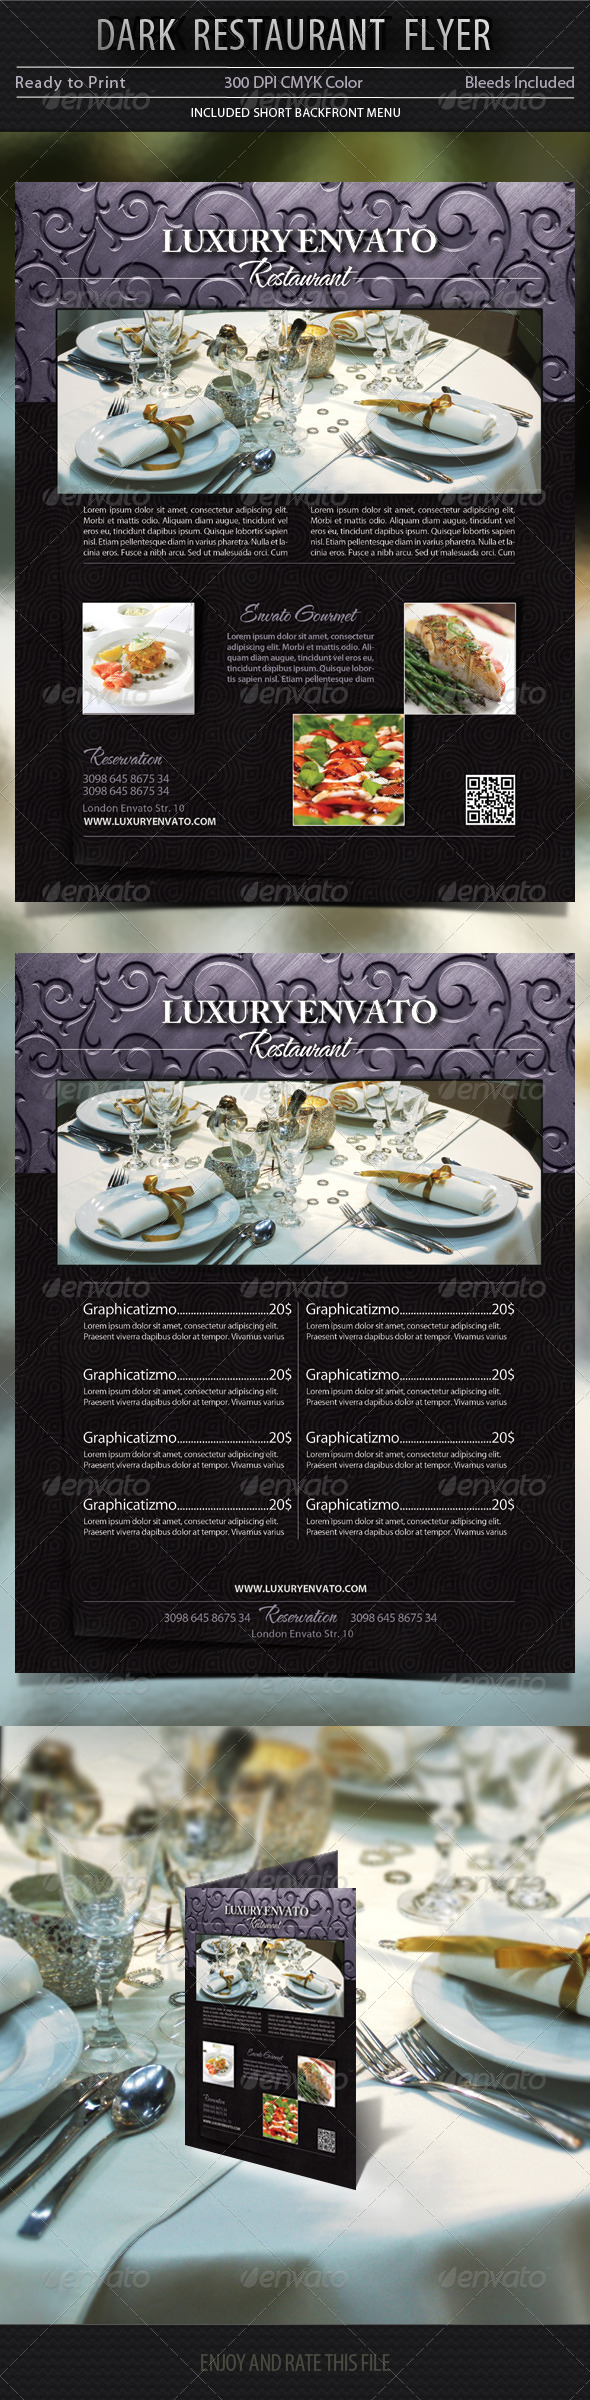 Dark Restaurant Flyer Template